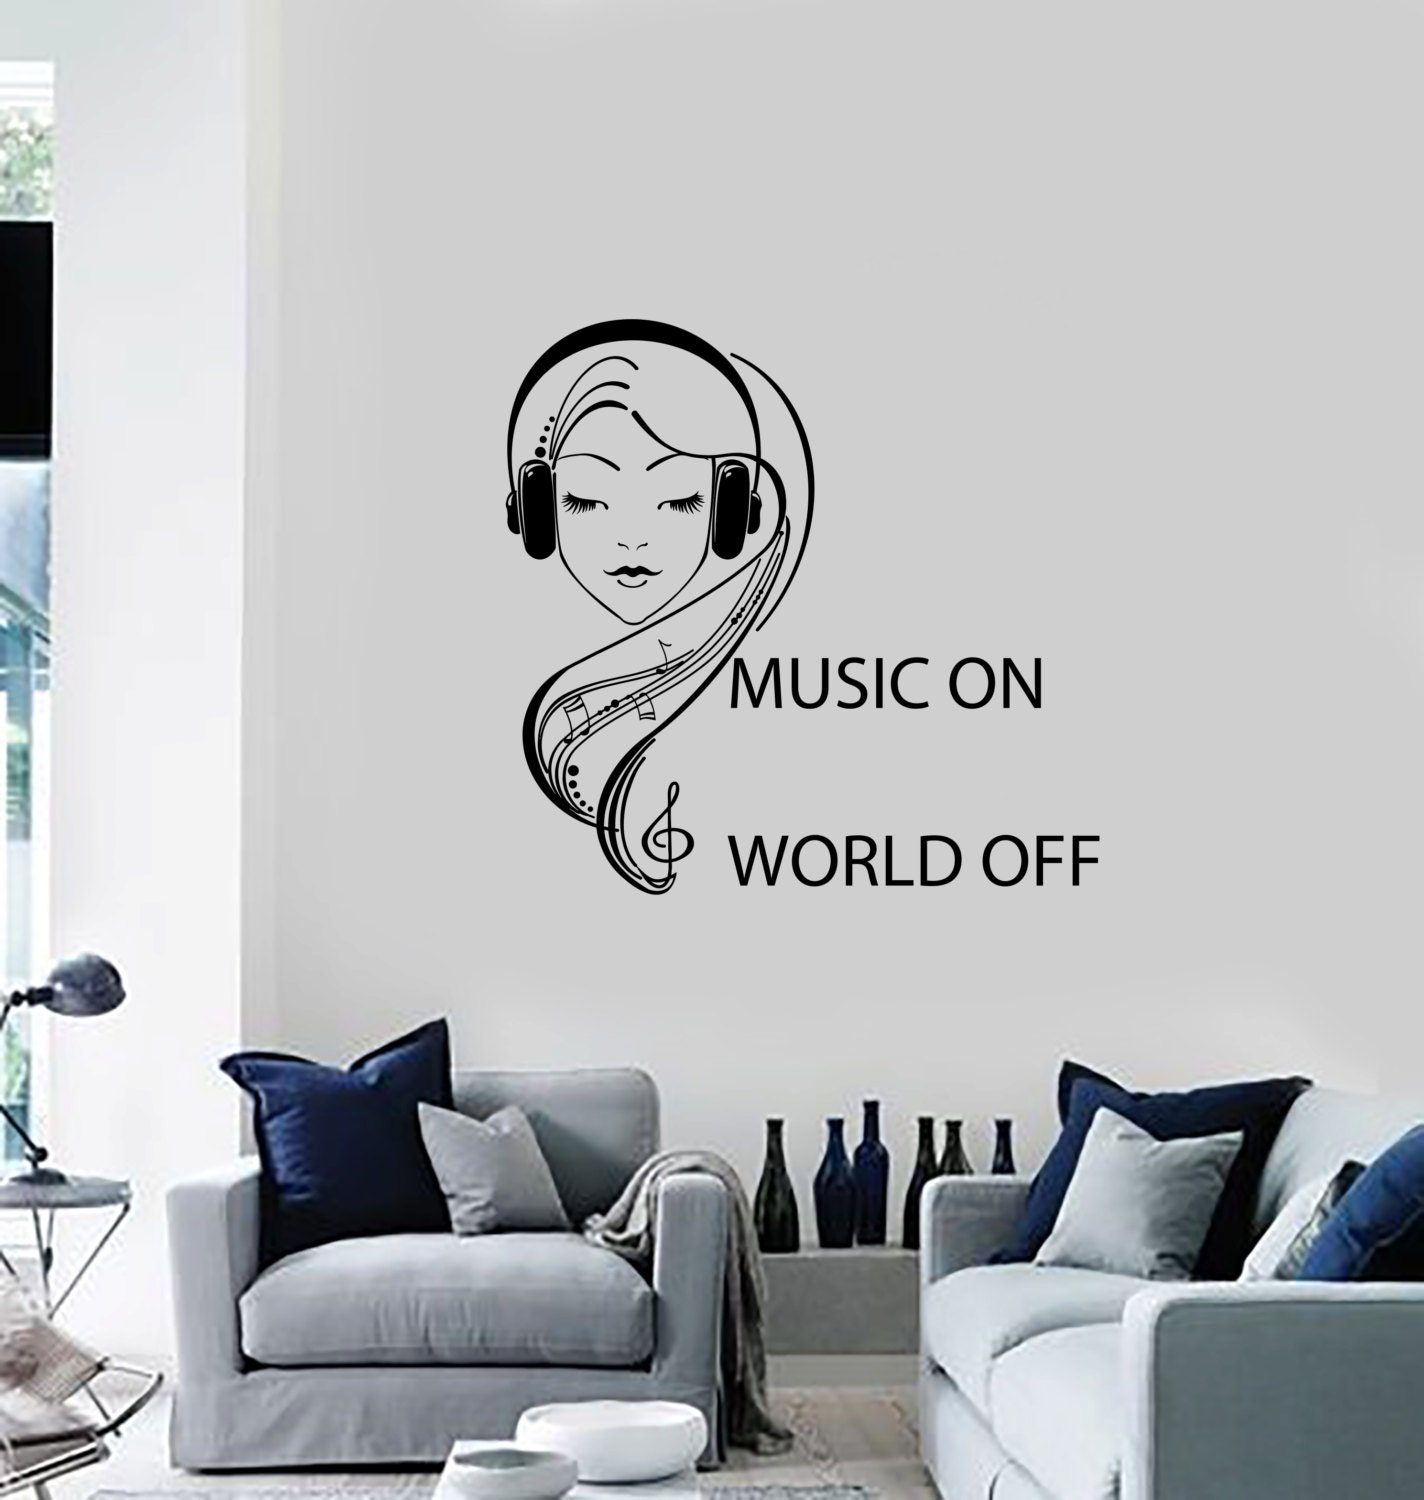 Wall vinyl decal music on world off quote teenage girl in zoom amipublicfo Image collections